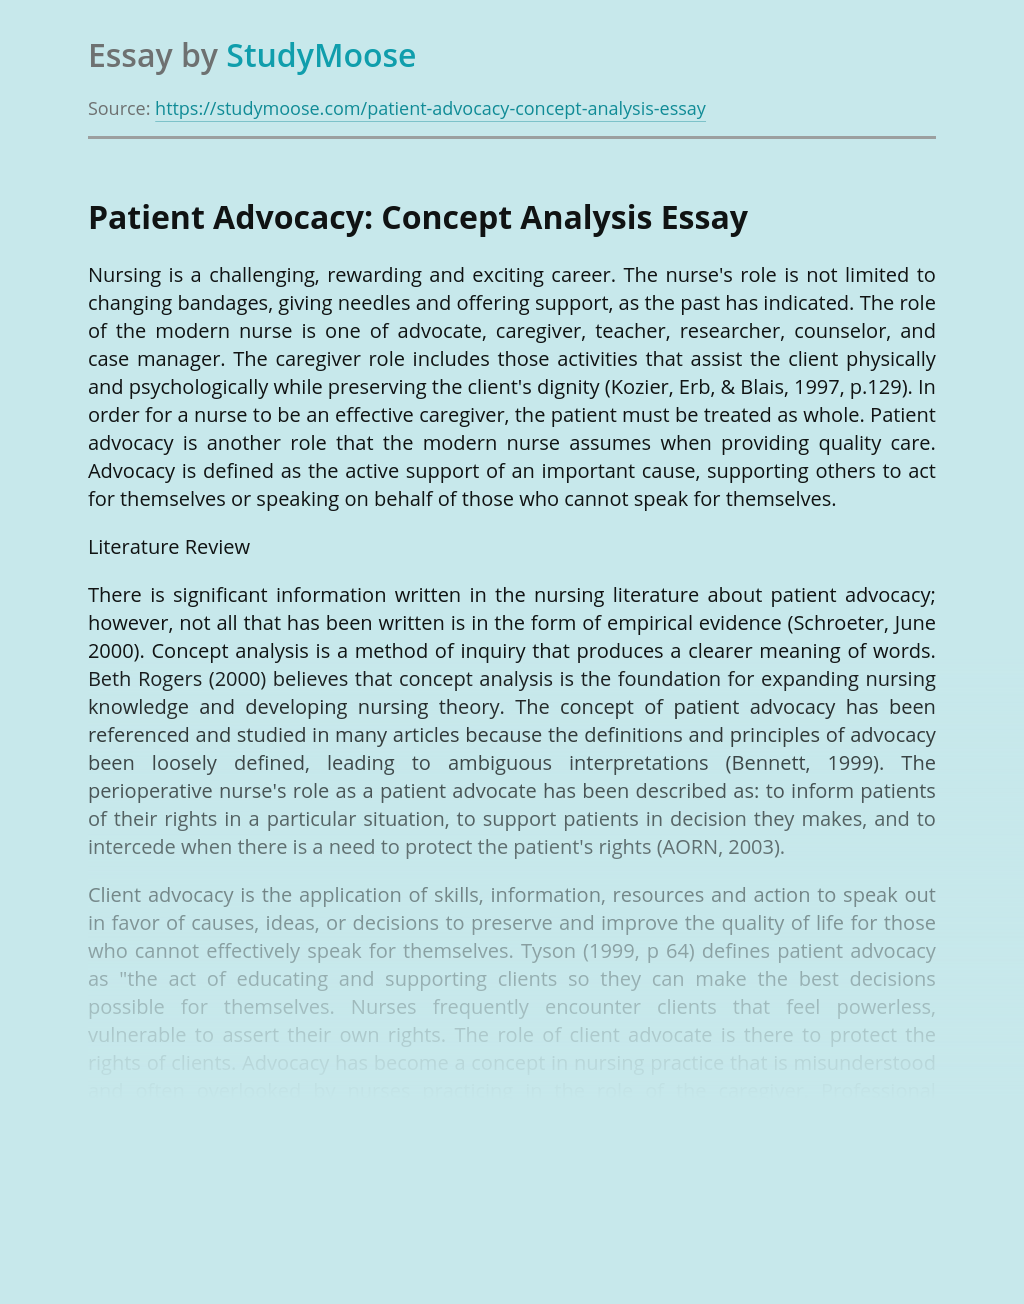 Concept Analysis of Patient Advocacy in Nursing